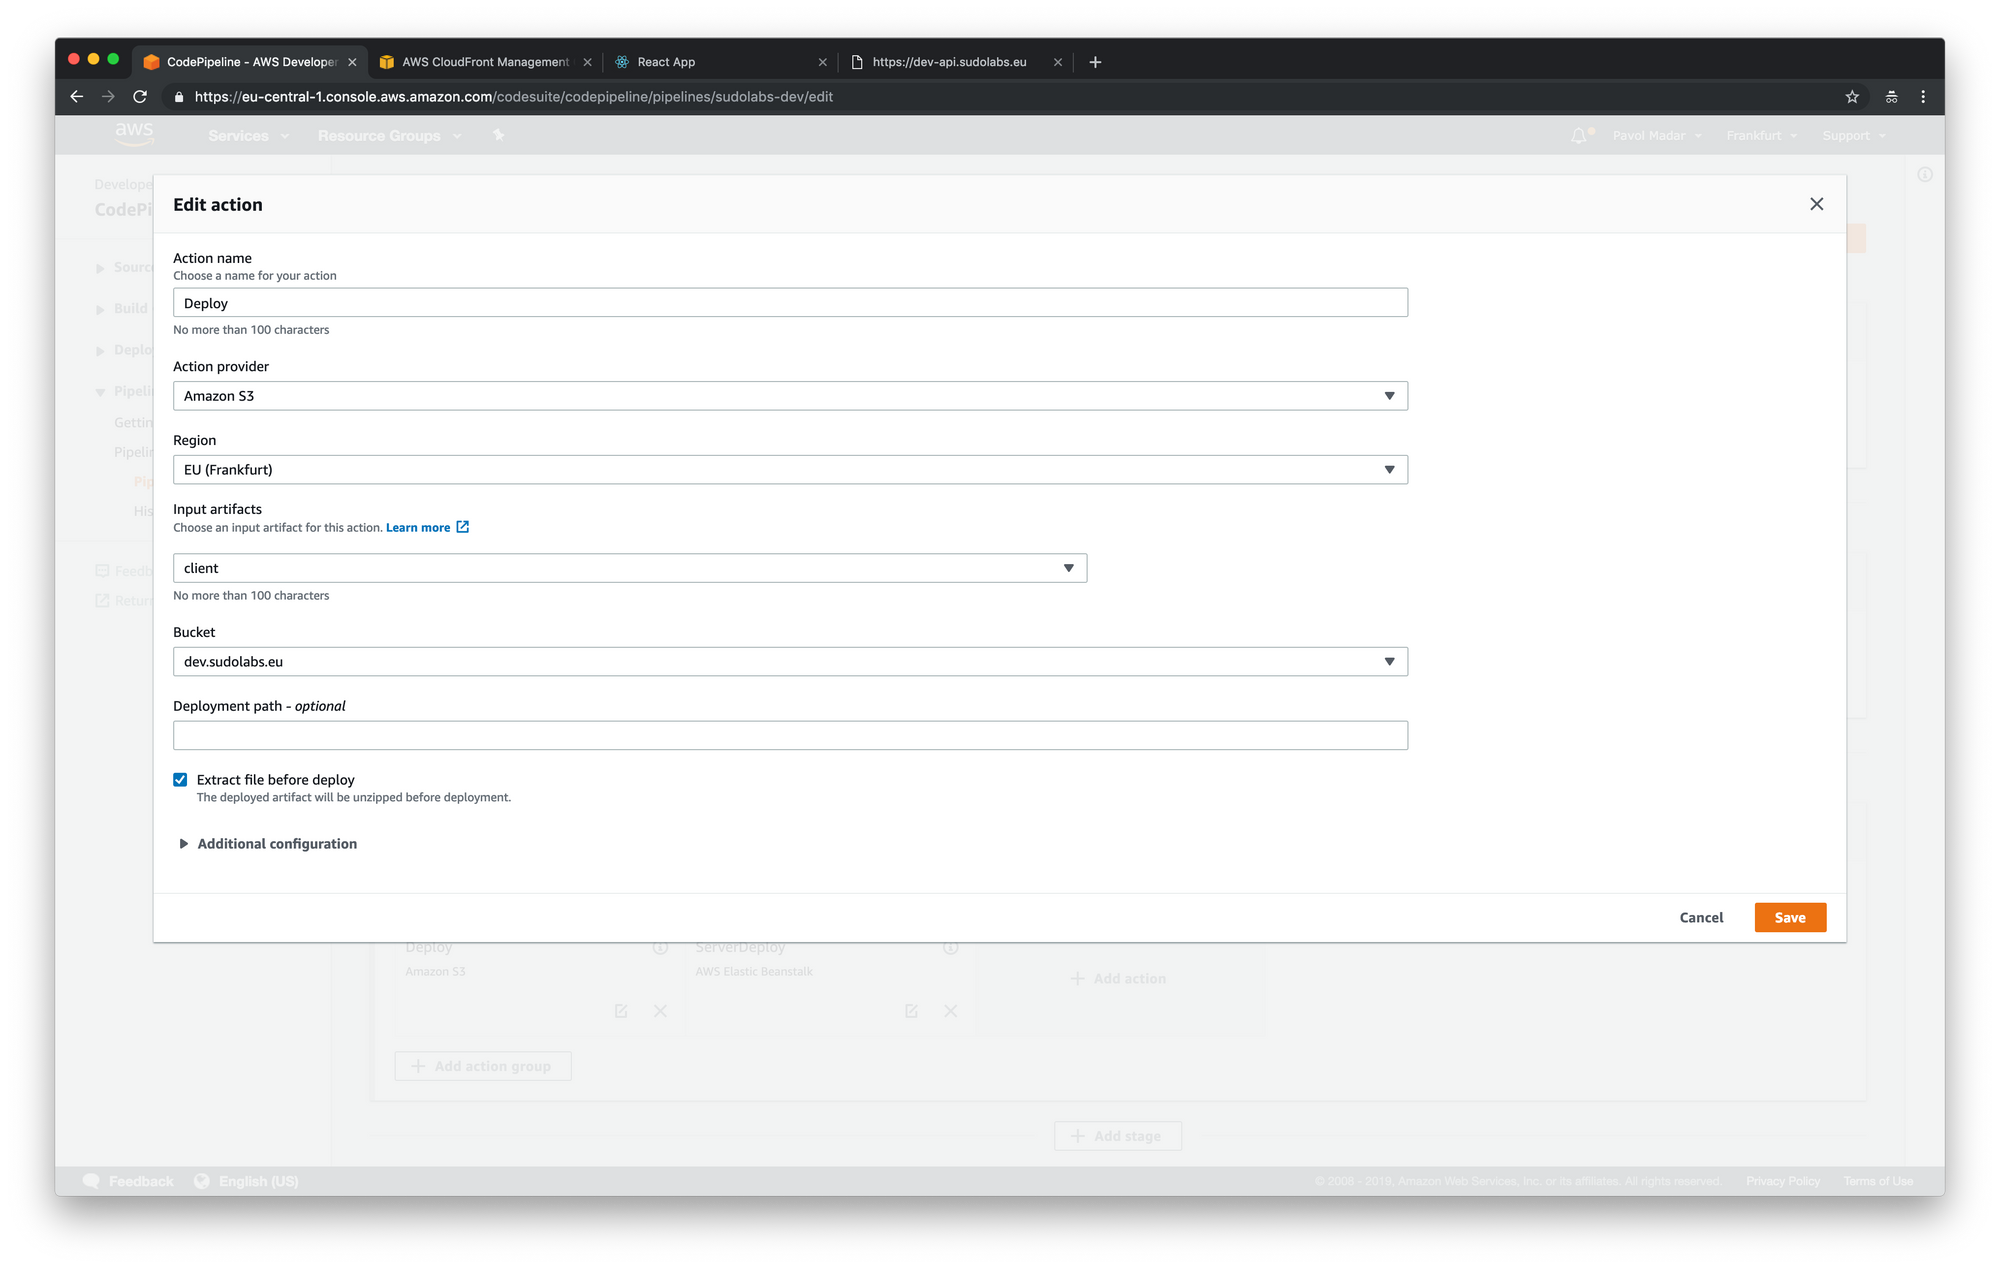 AWS CodePipeline - add input artifacts into the deploy step